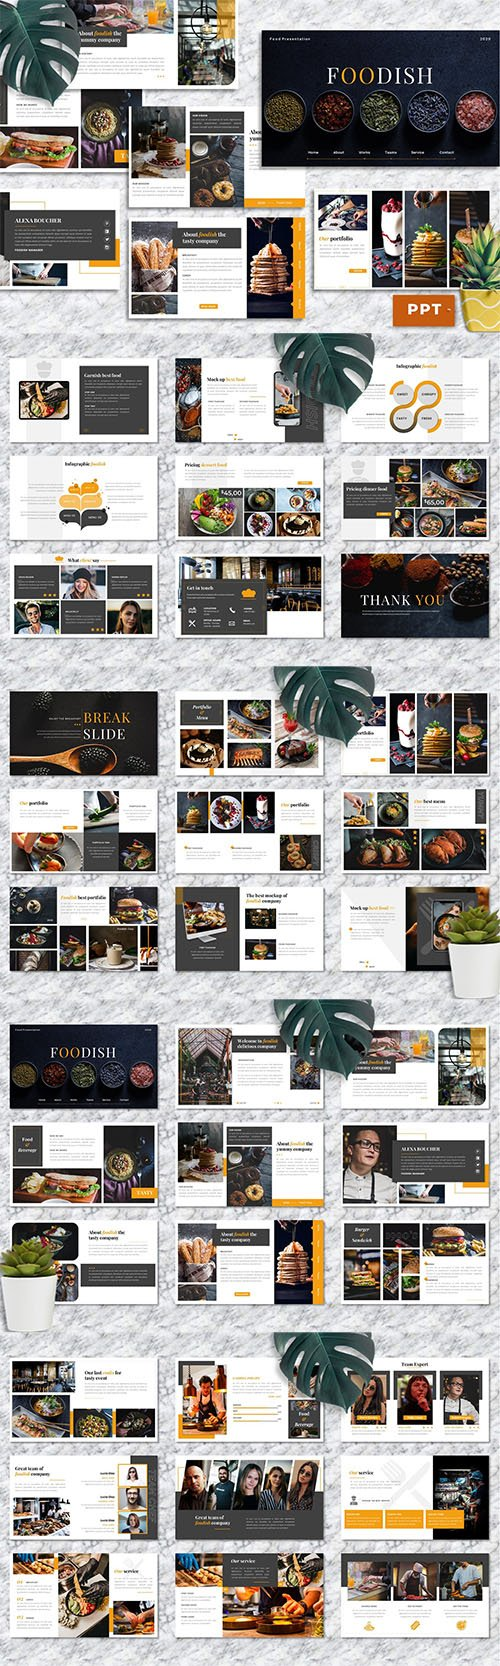 Foodish – Food & Beverage PowerPoint Template